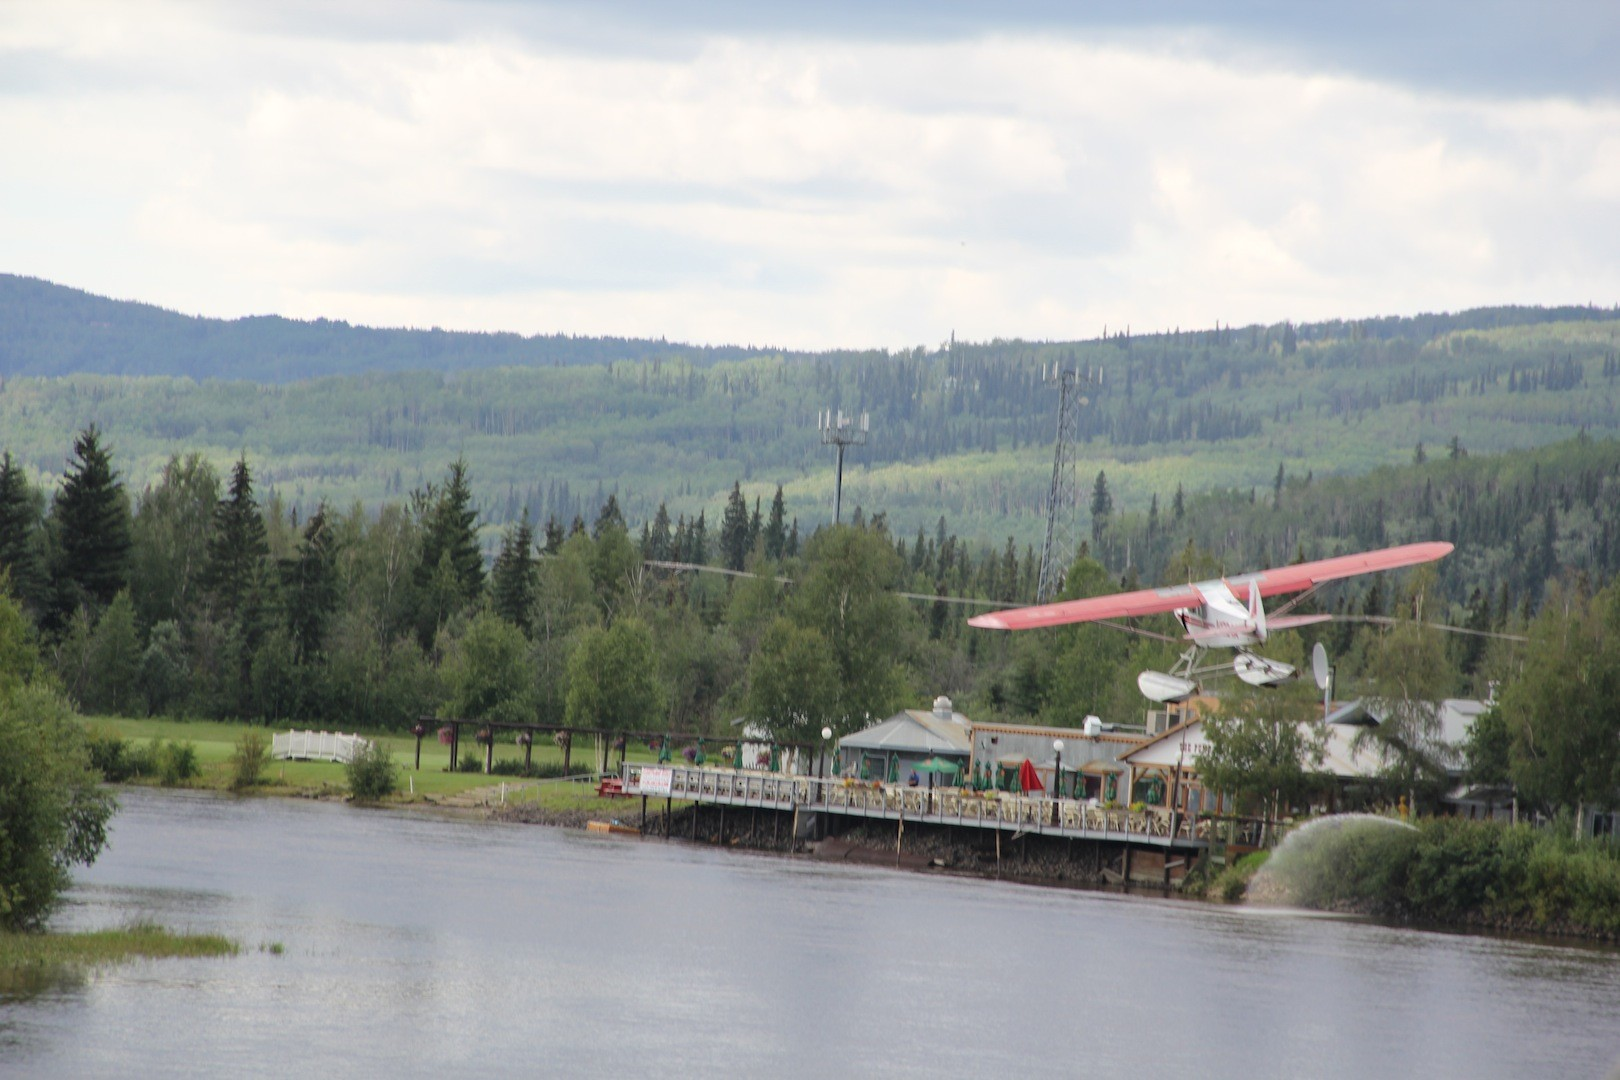 Plane, dogsled, and sternwheelers or other boats on the river, were the main methods of getting equipment to the mines, as there were not many roads.